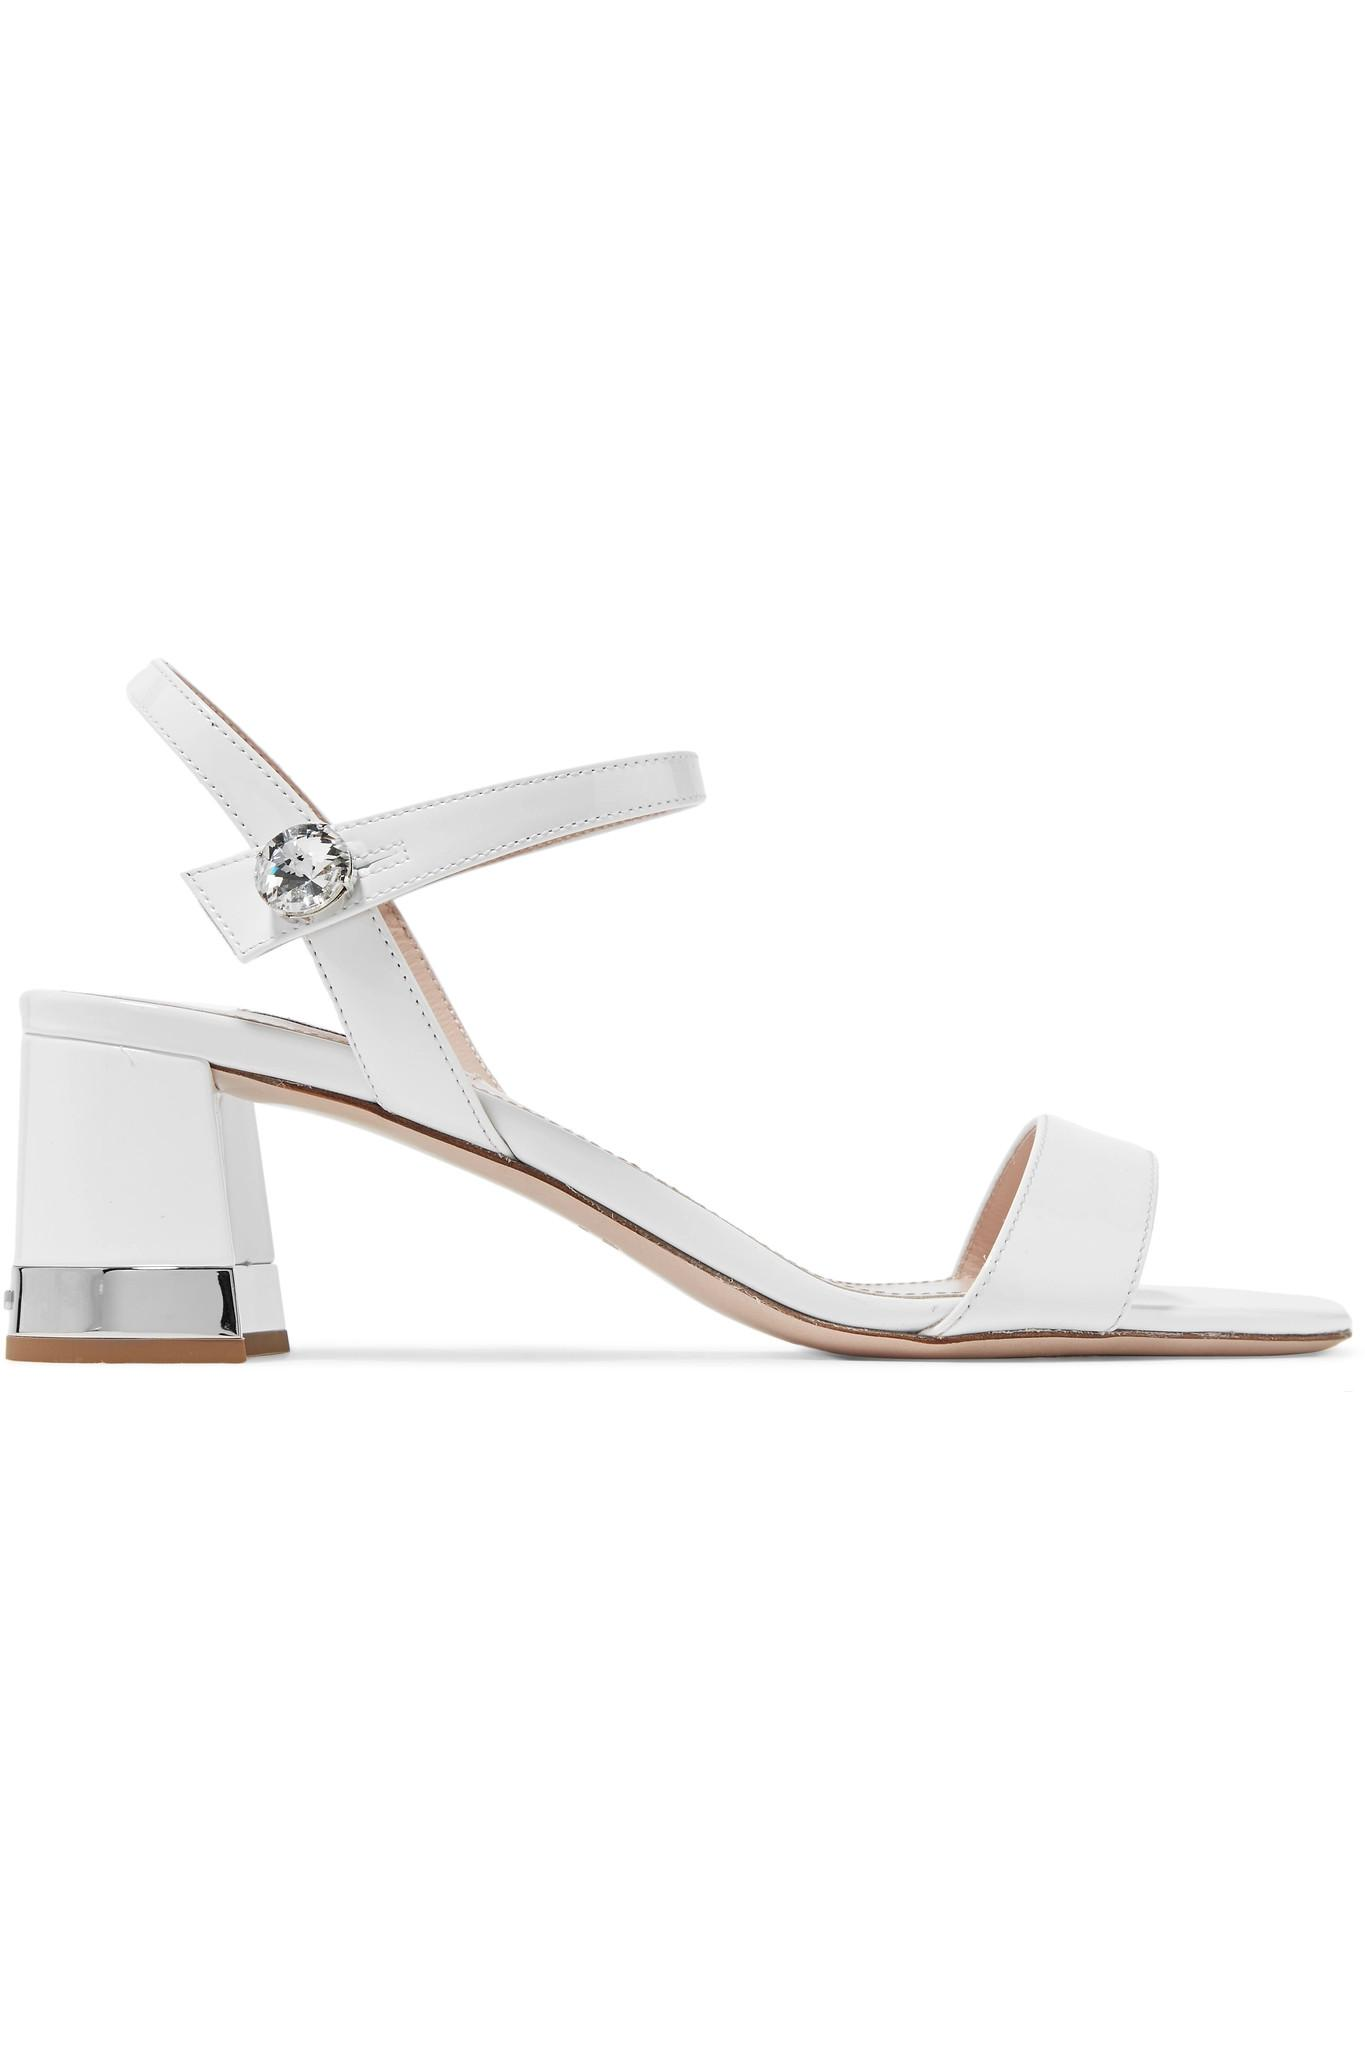 55b191f0971 Lyst - Miu Miu Crystal-embellished Patent-leather Sandals in White